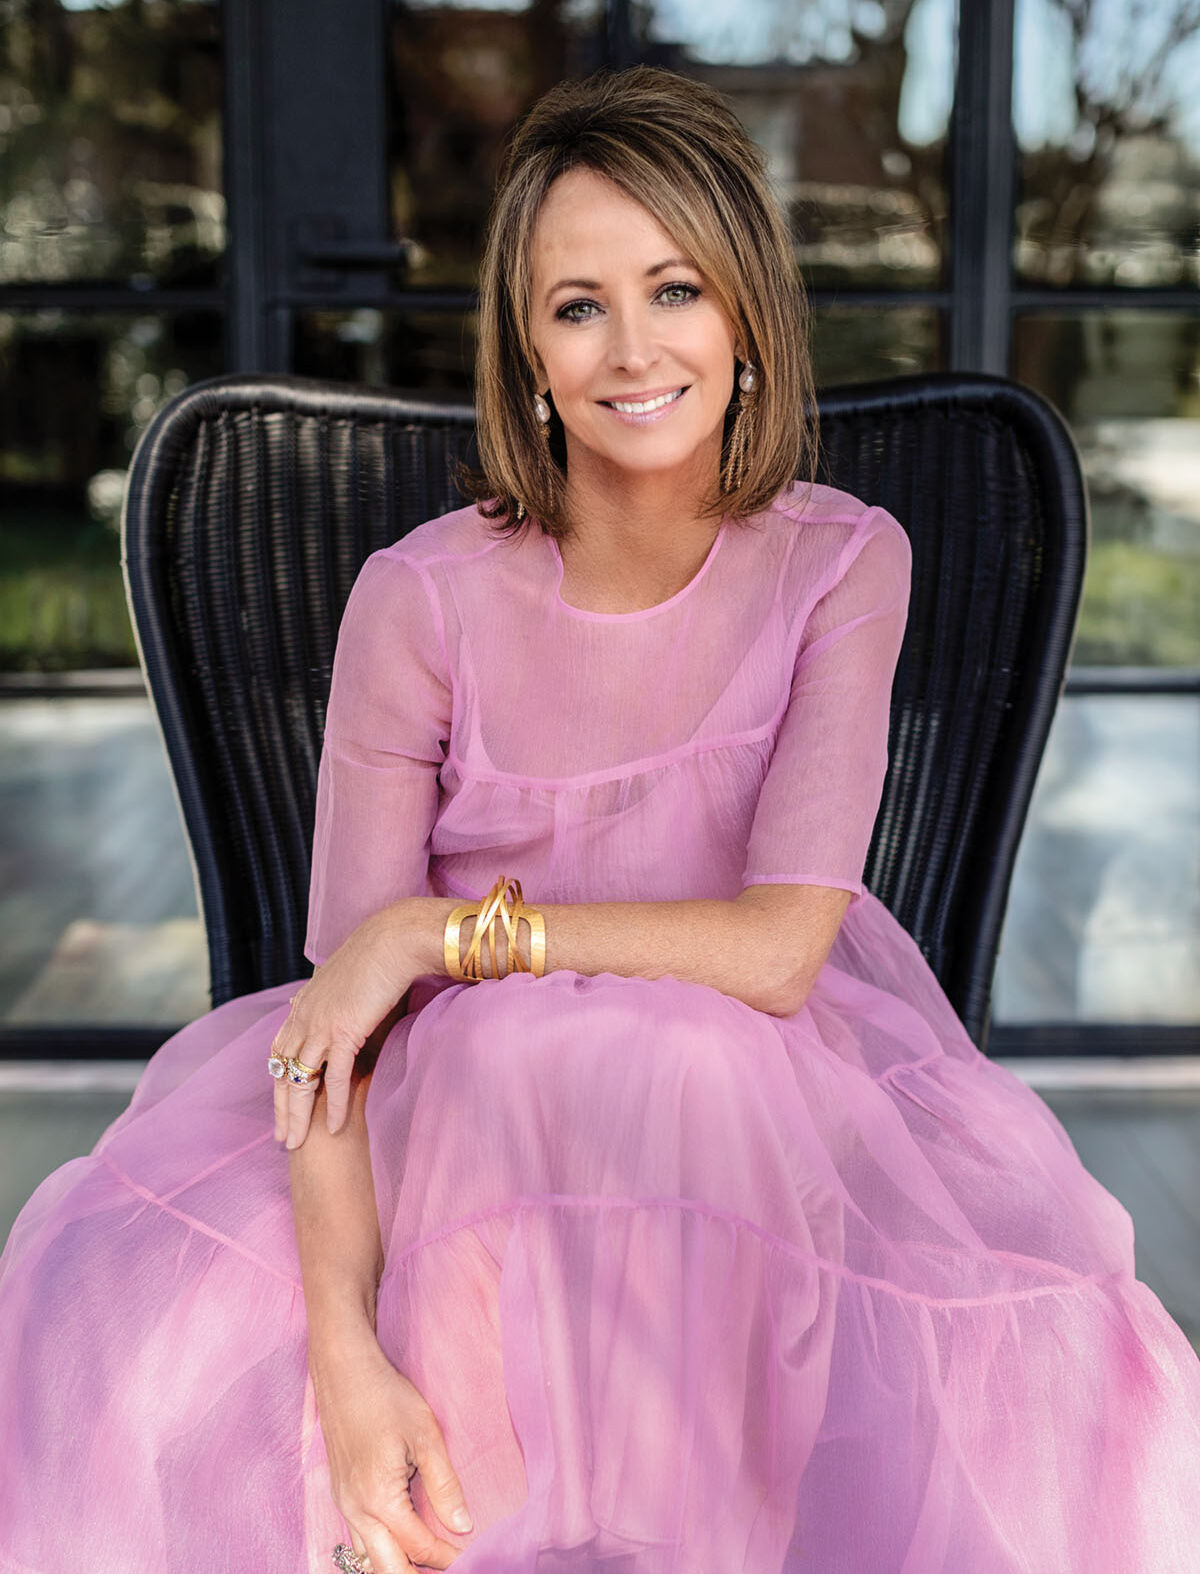 Inteiro designer Janie Molster wears a bright pink, long, flowy casual dresses, and sits in a black wicker chair outdoors